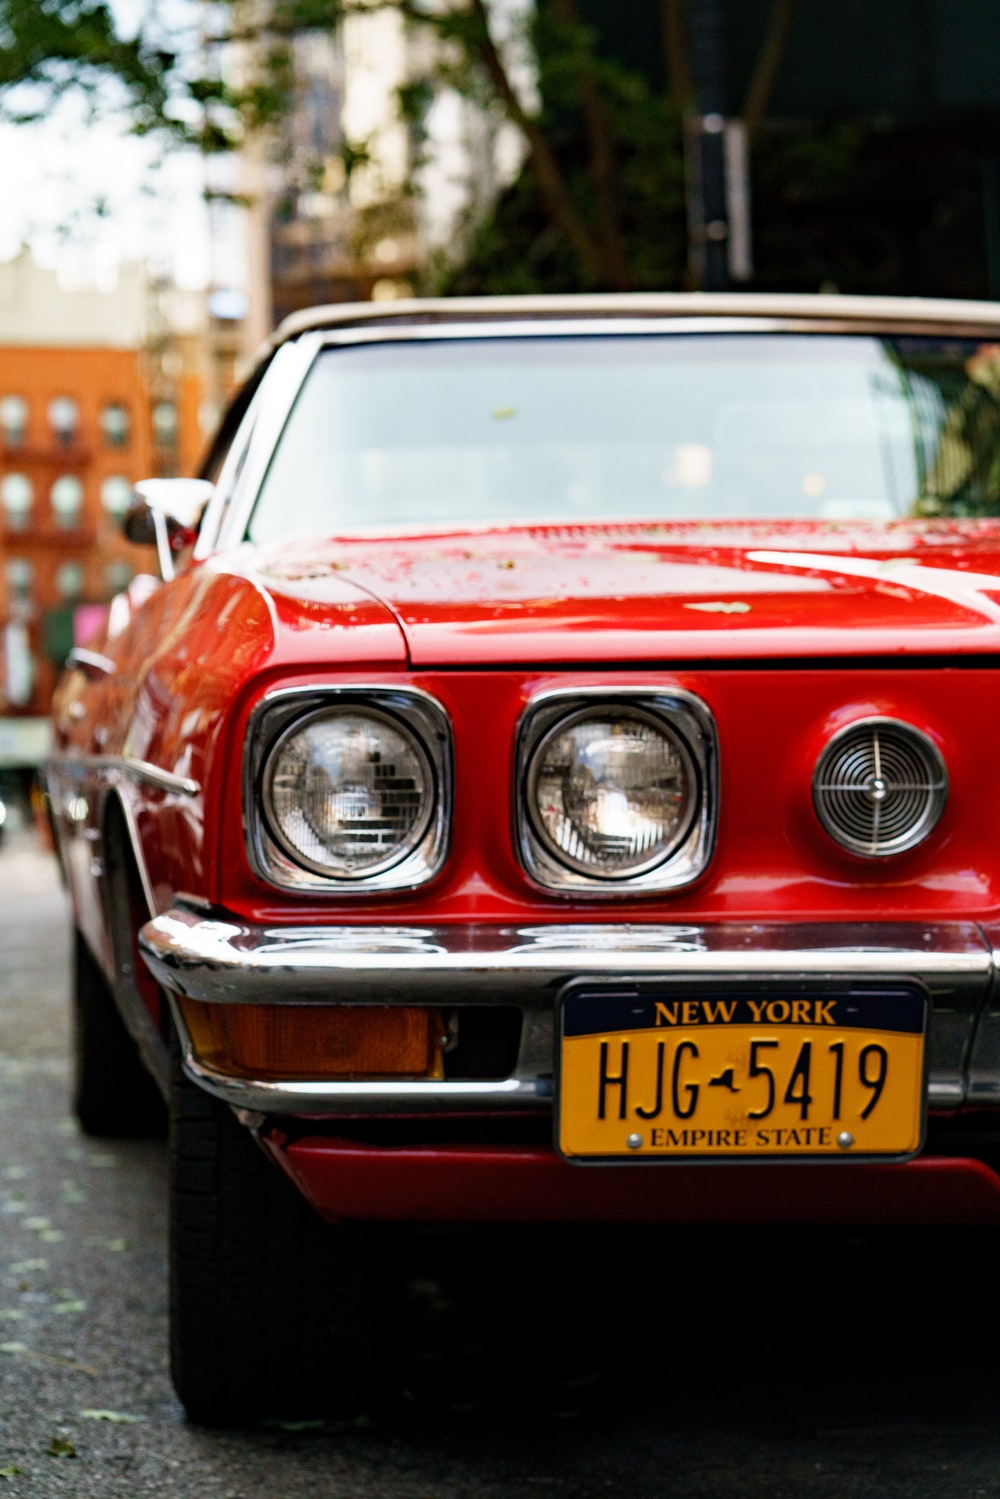 close up photo of red car with New York HJG 5419 license plate